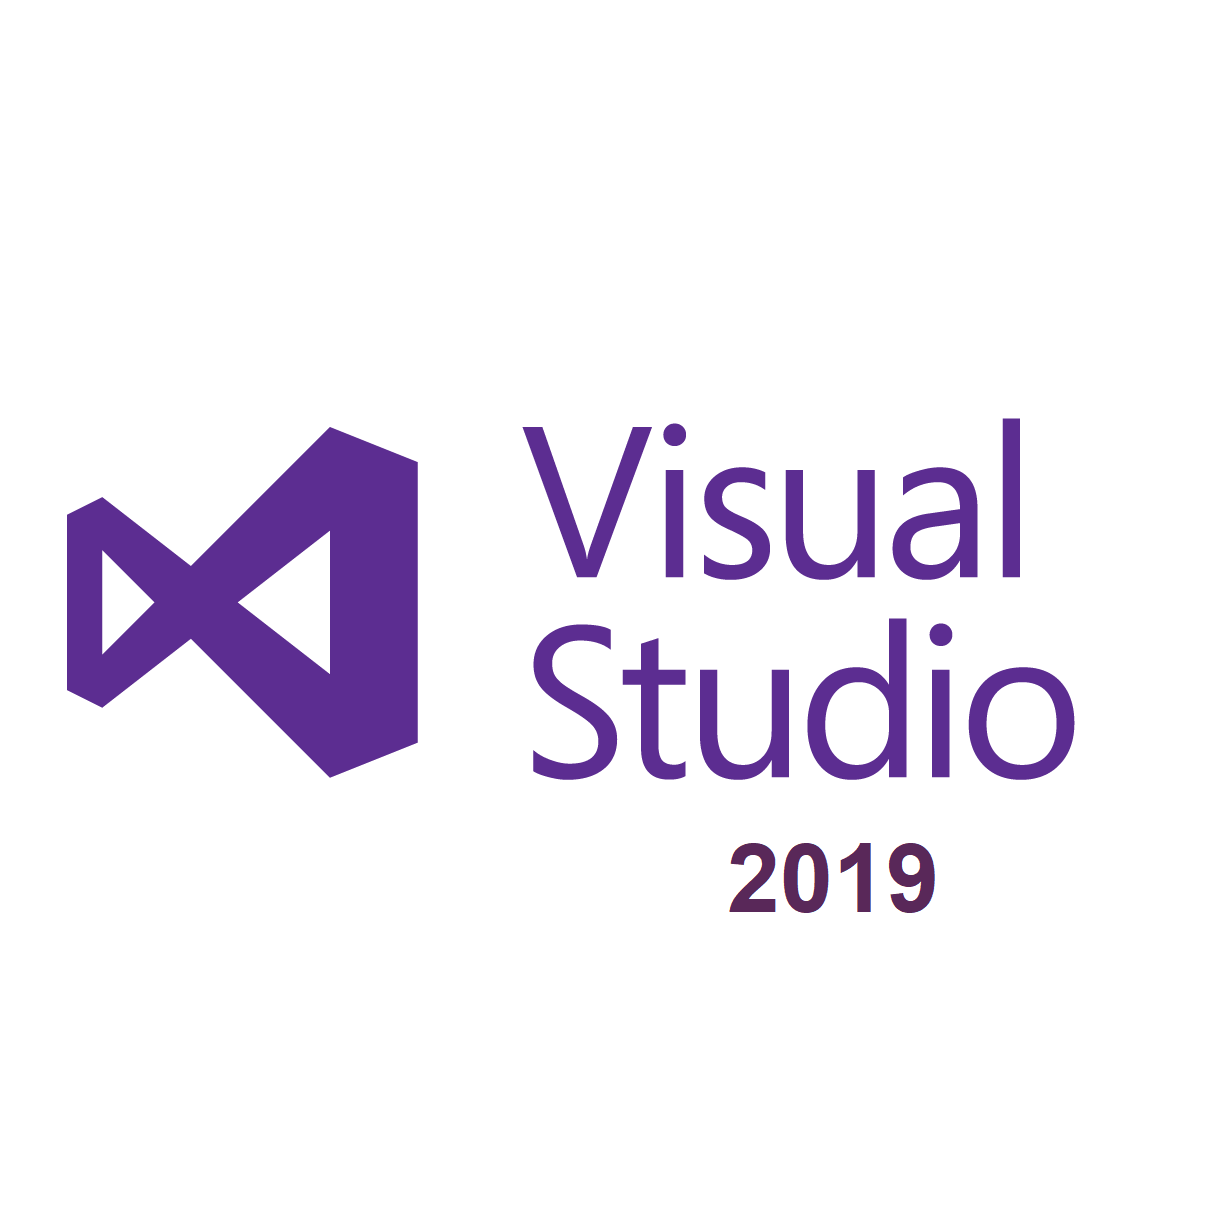 Download Visual Studio 2019 and test the new features today.